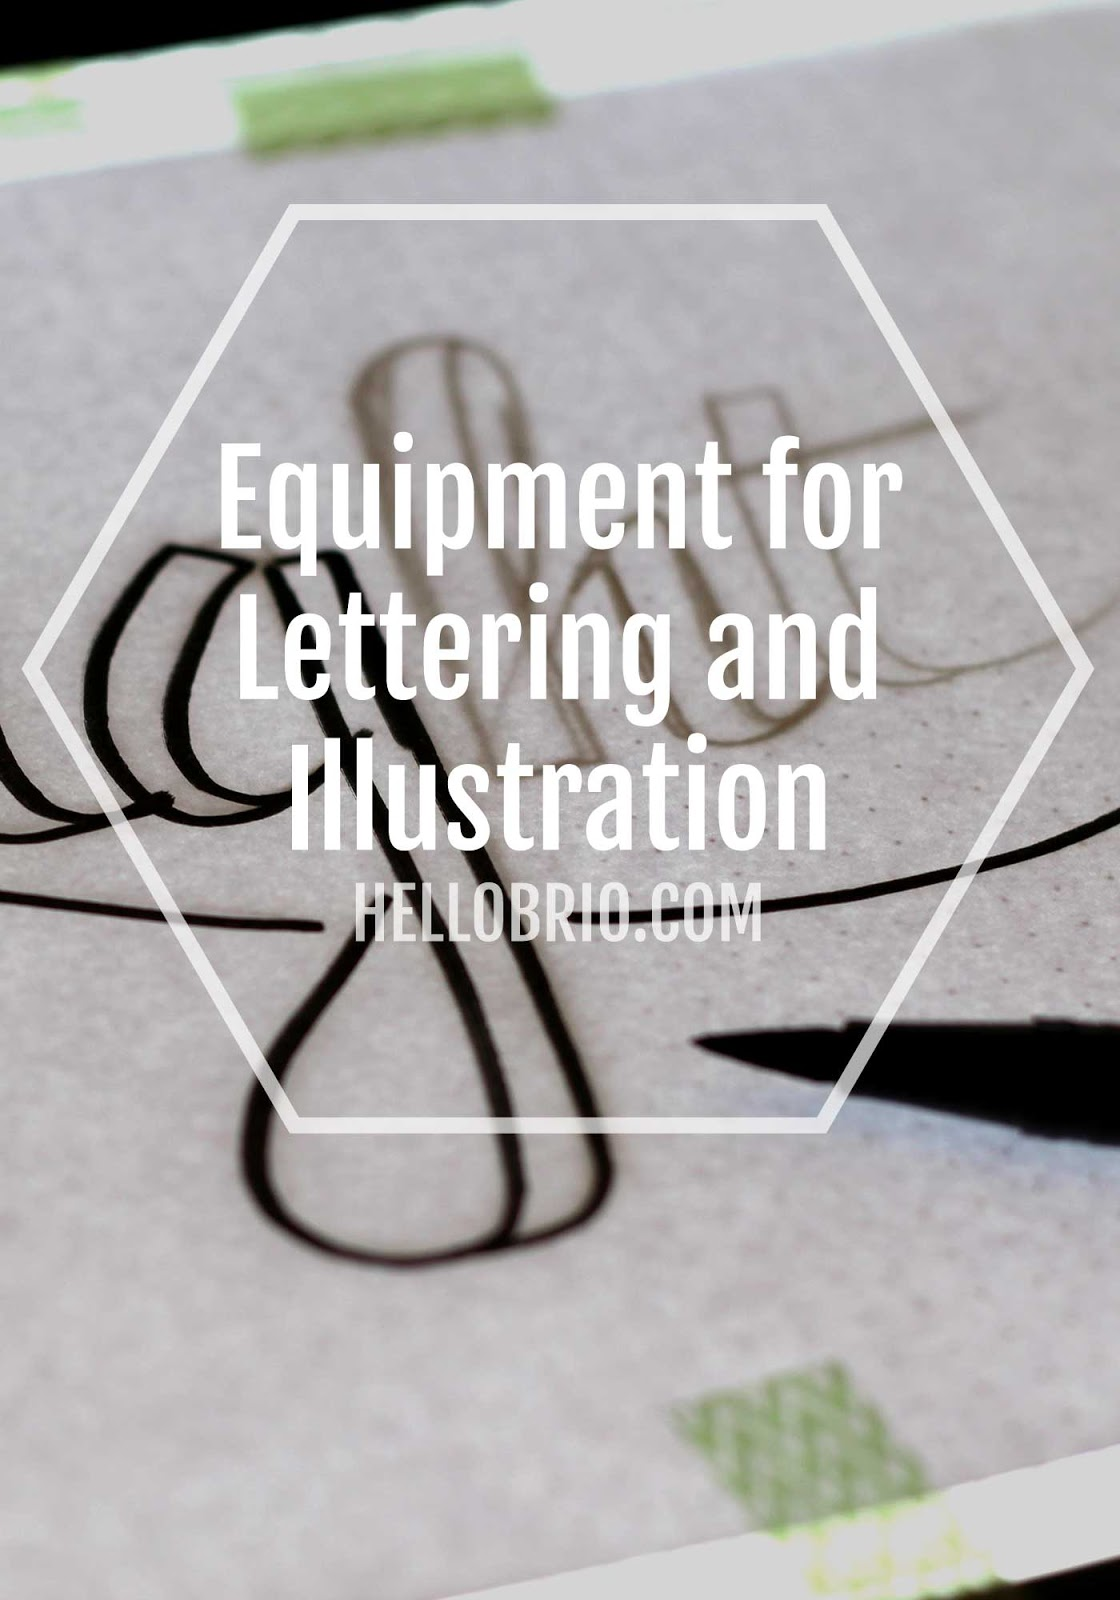 Equipment for Illustration and lettering - hellobrio.com